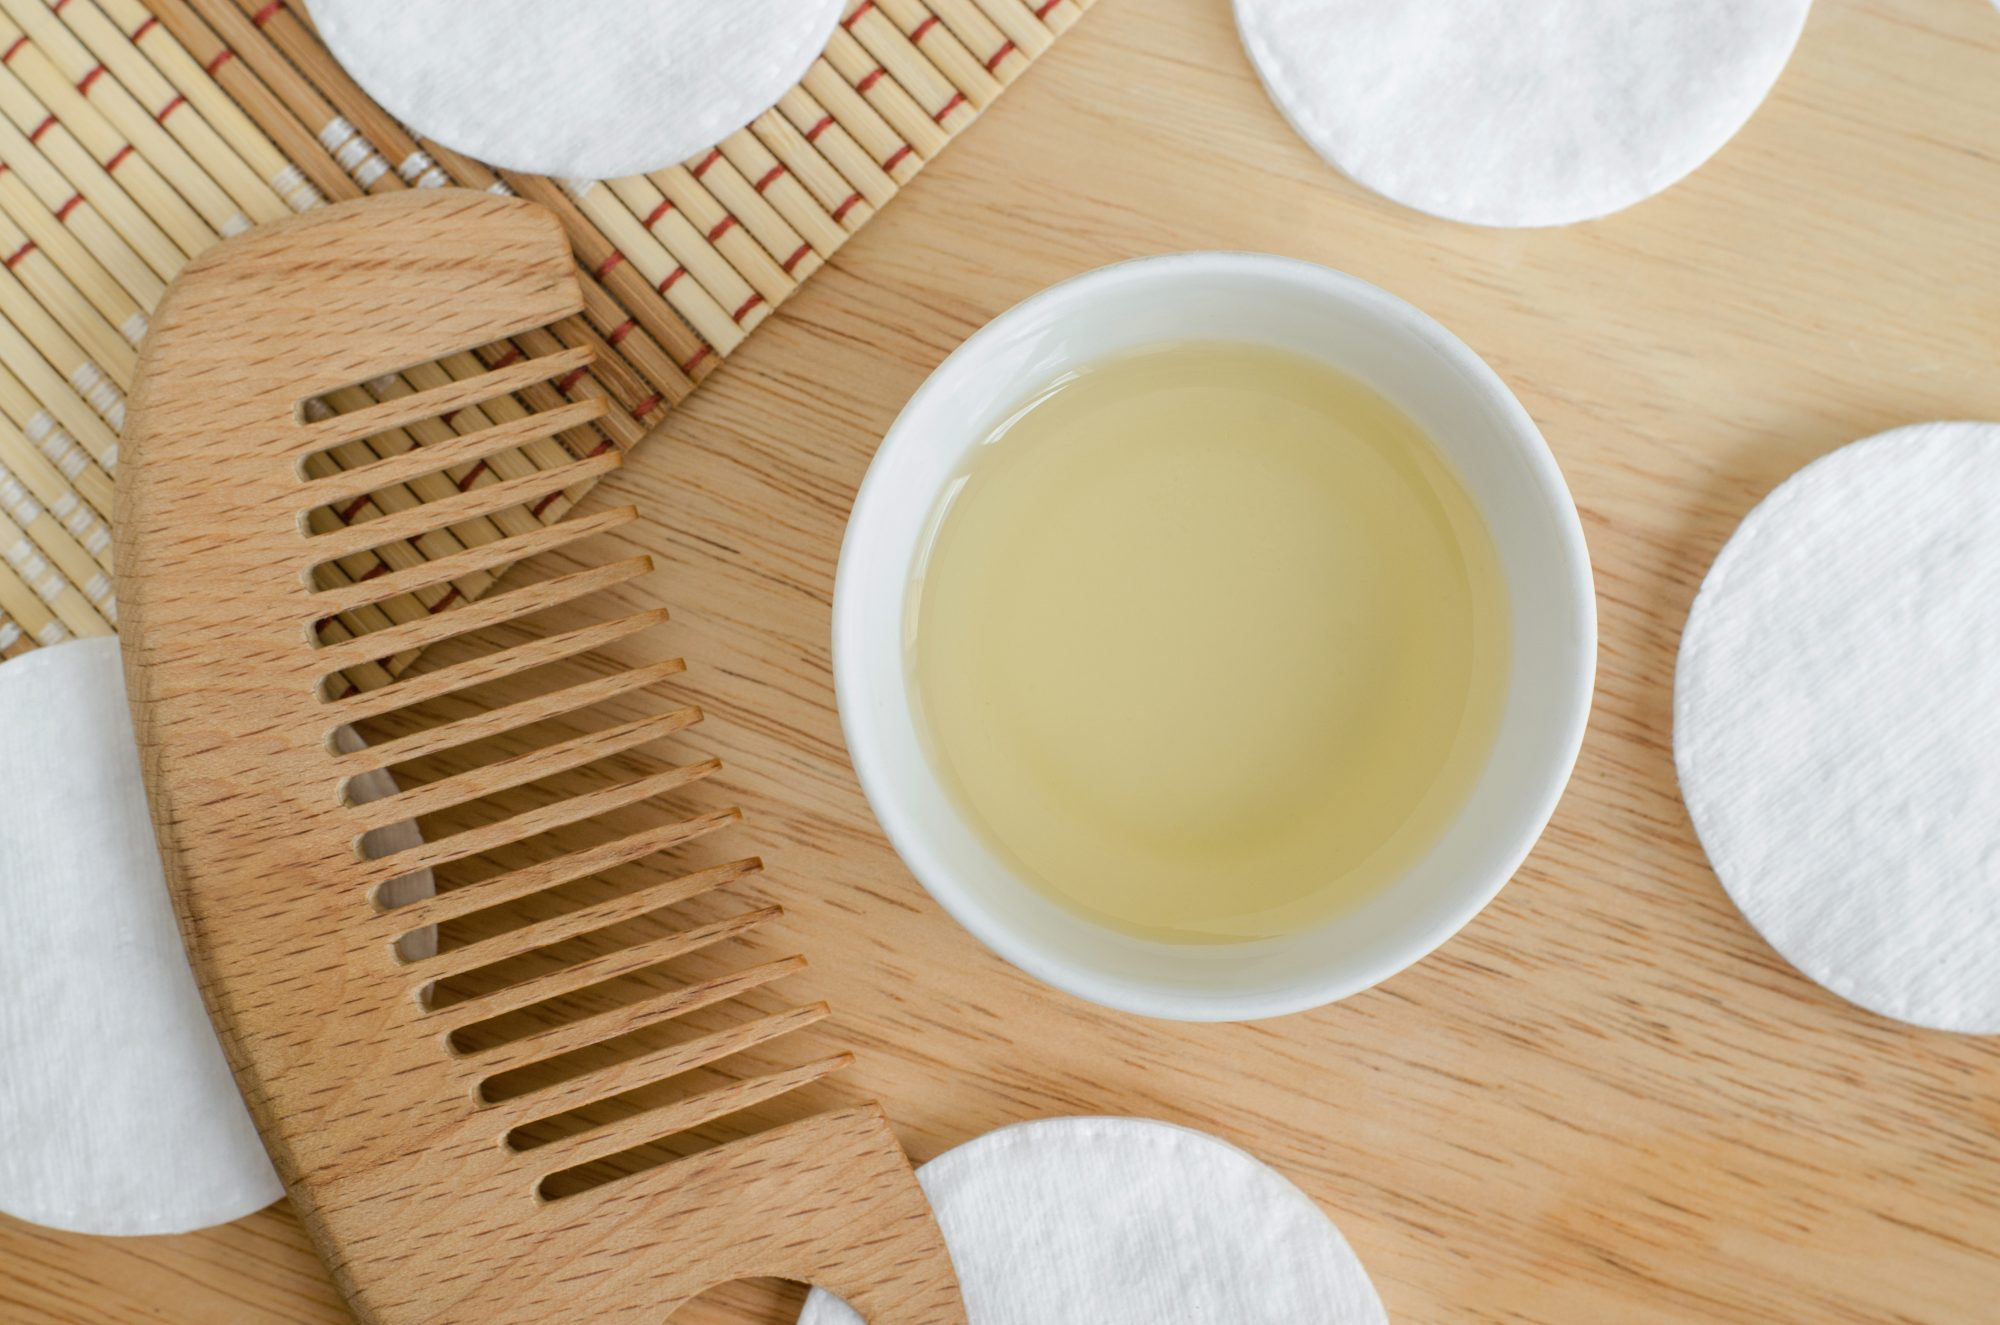 hot-oil treatment for hair: comb and oil